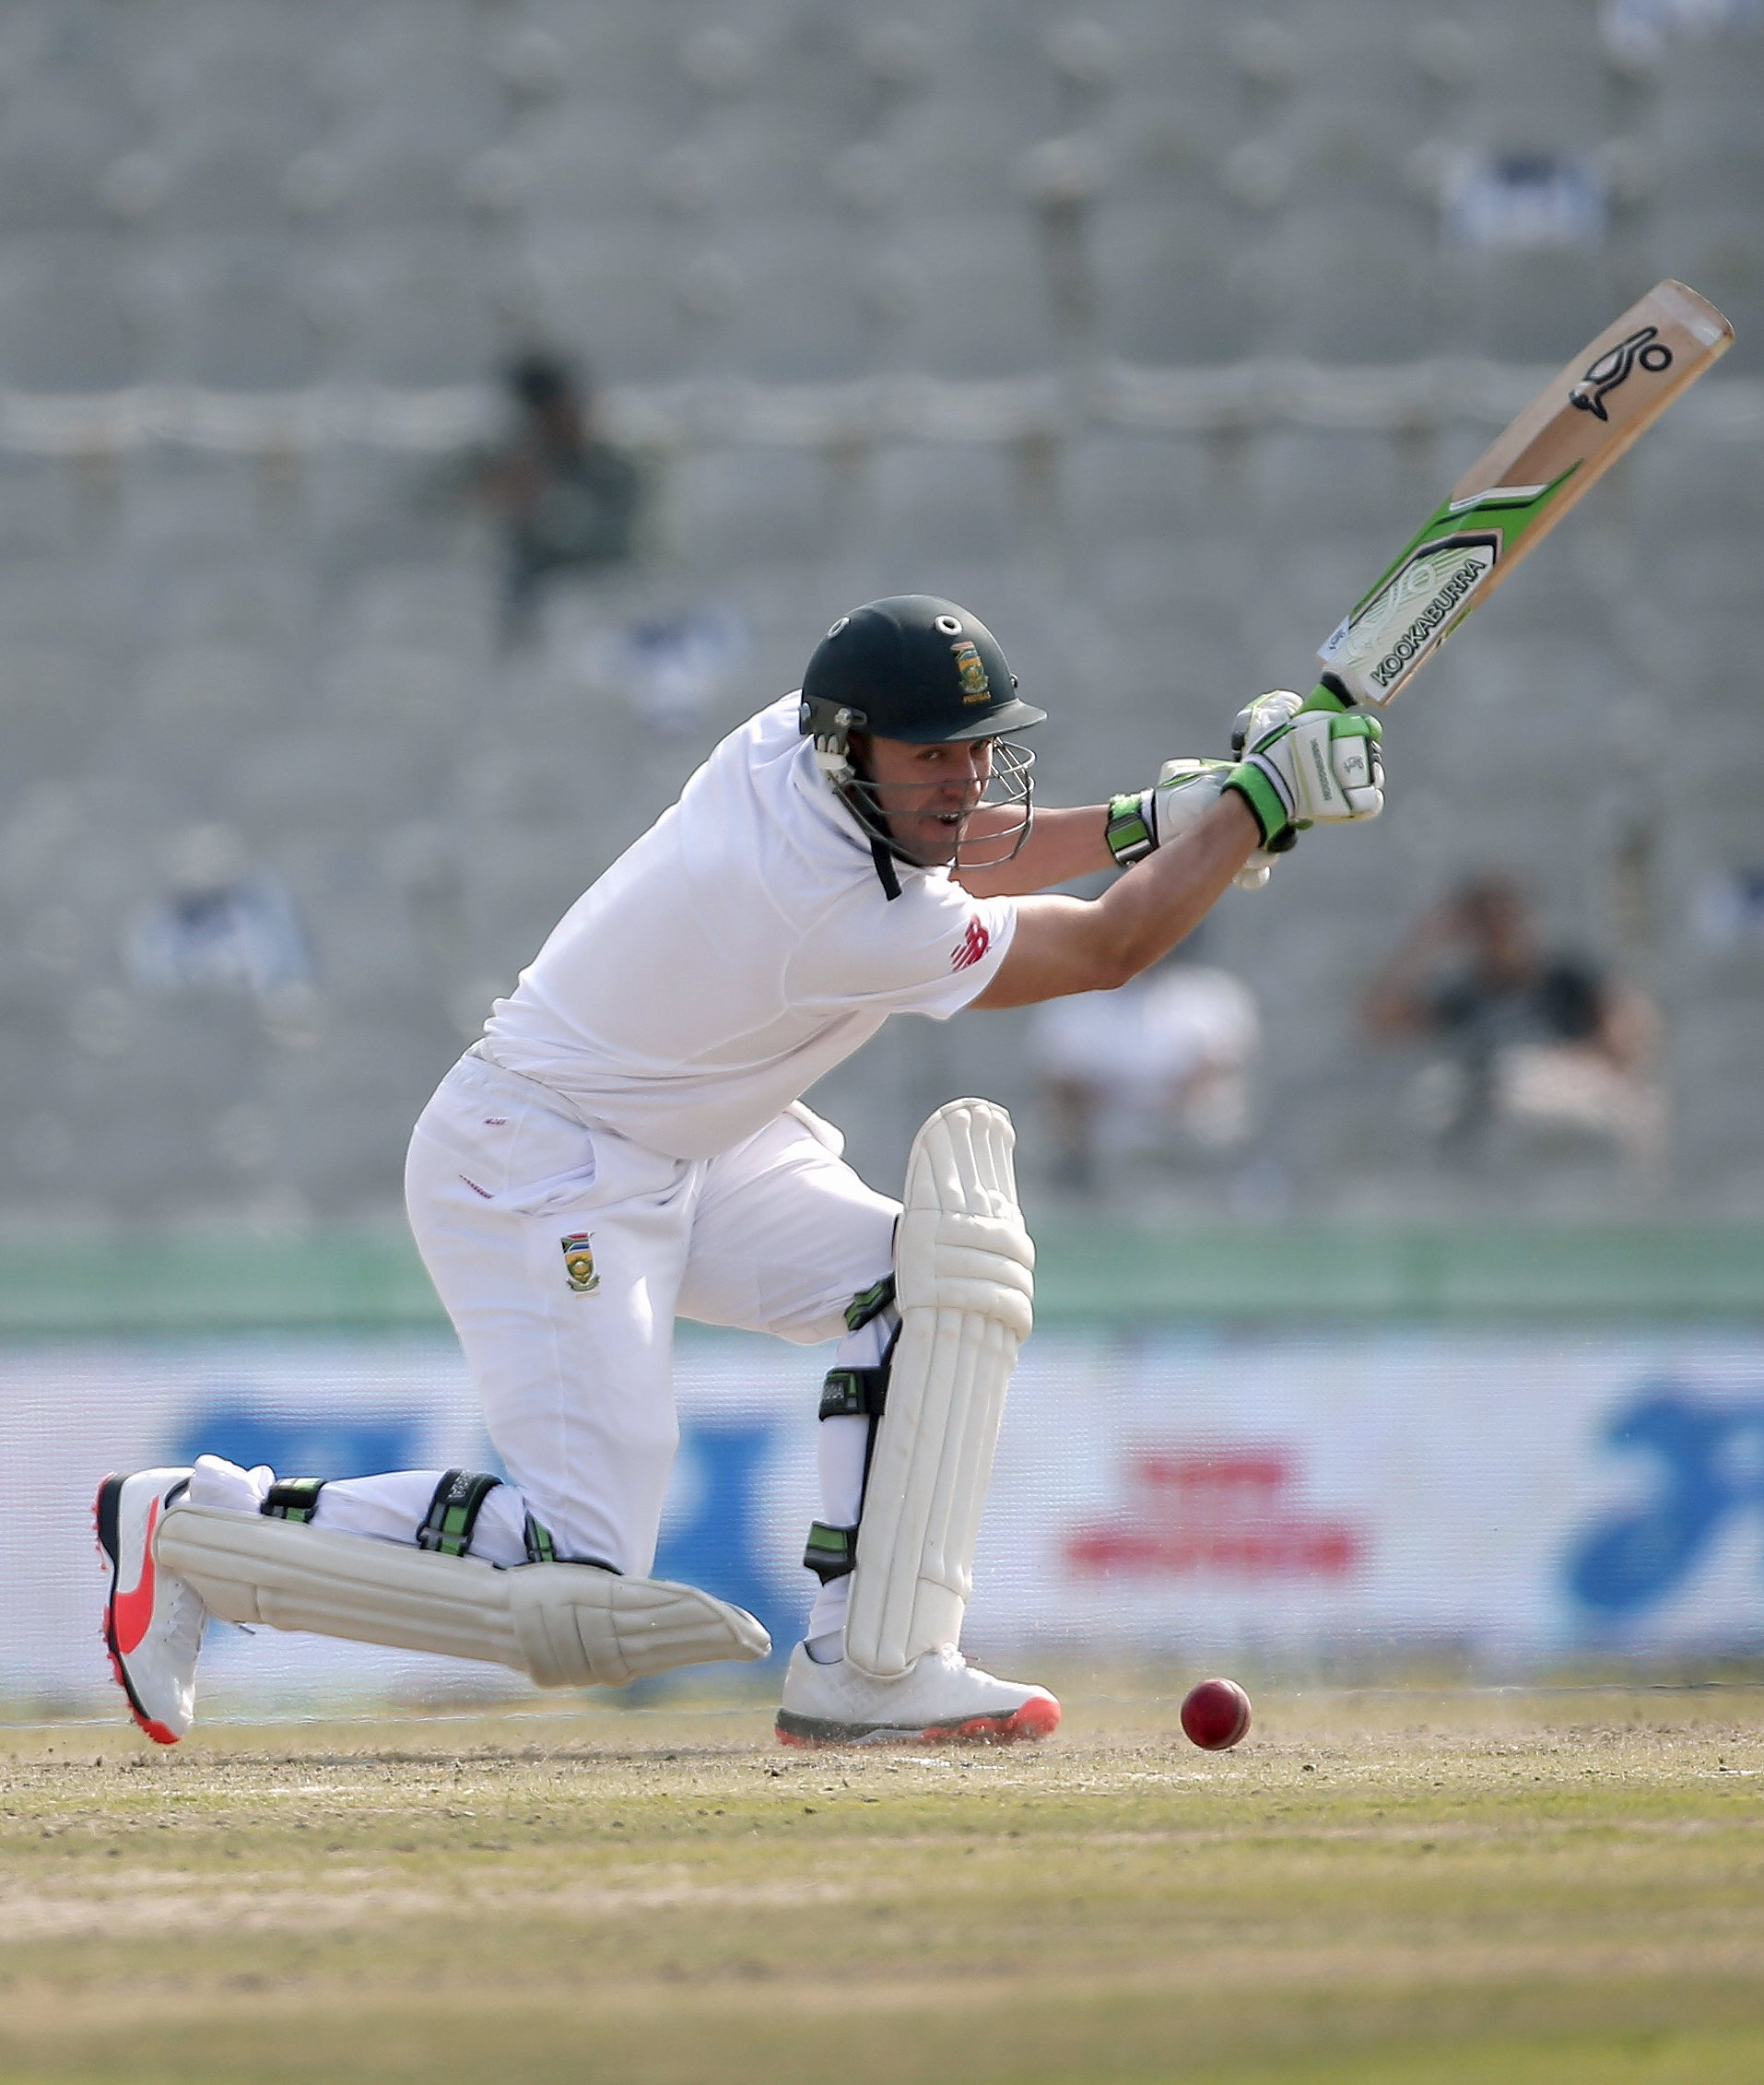 South Africa's AB de Villiers plays a shot during the second day of their first cricket test match against India, in Mohali, India, November 6, 2015. REUTERS/Adnan Abidi